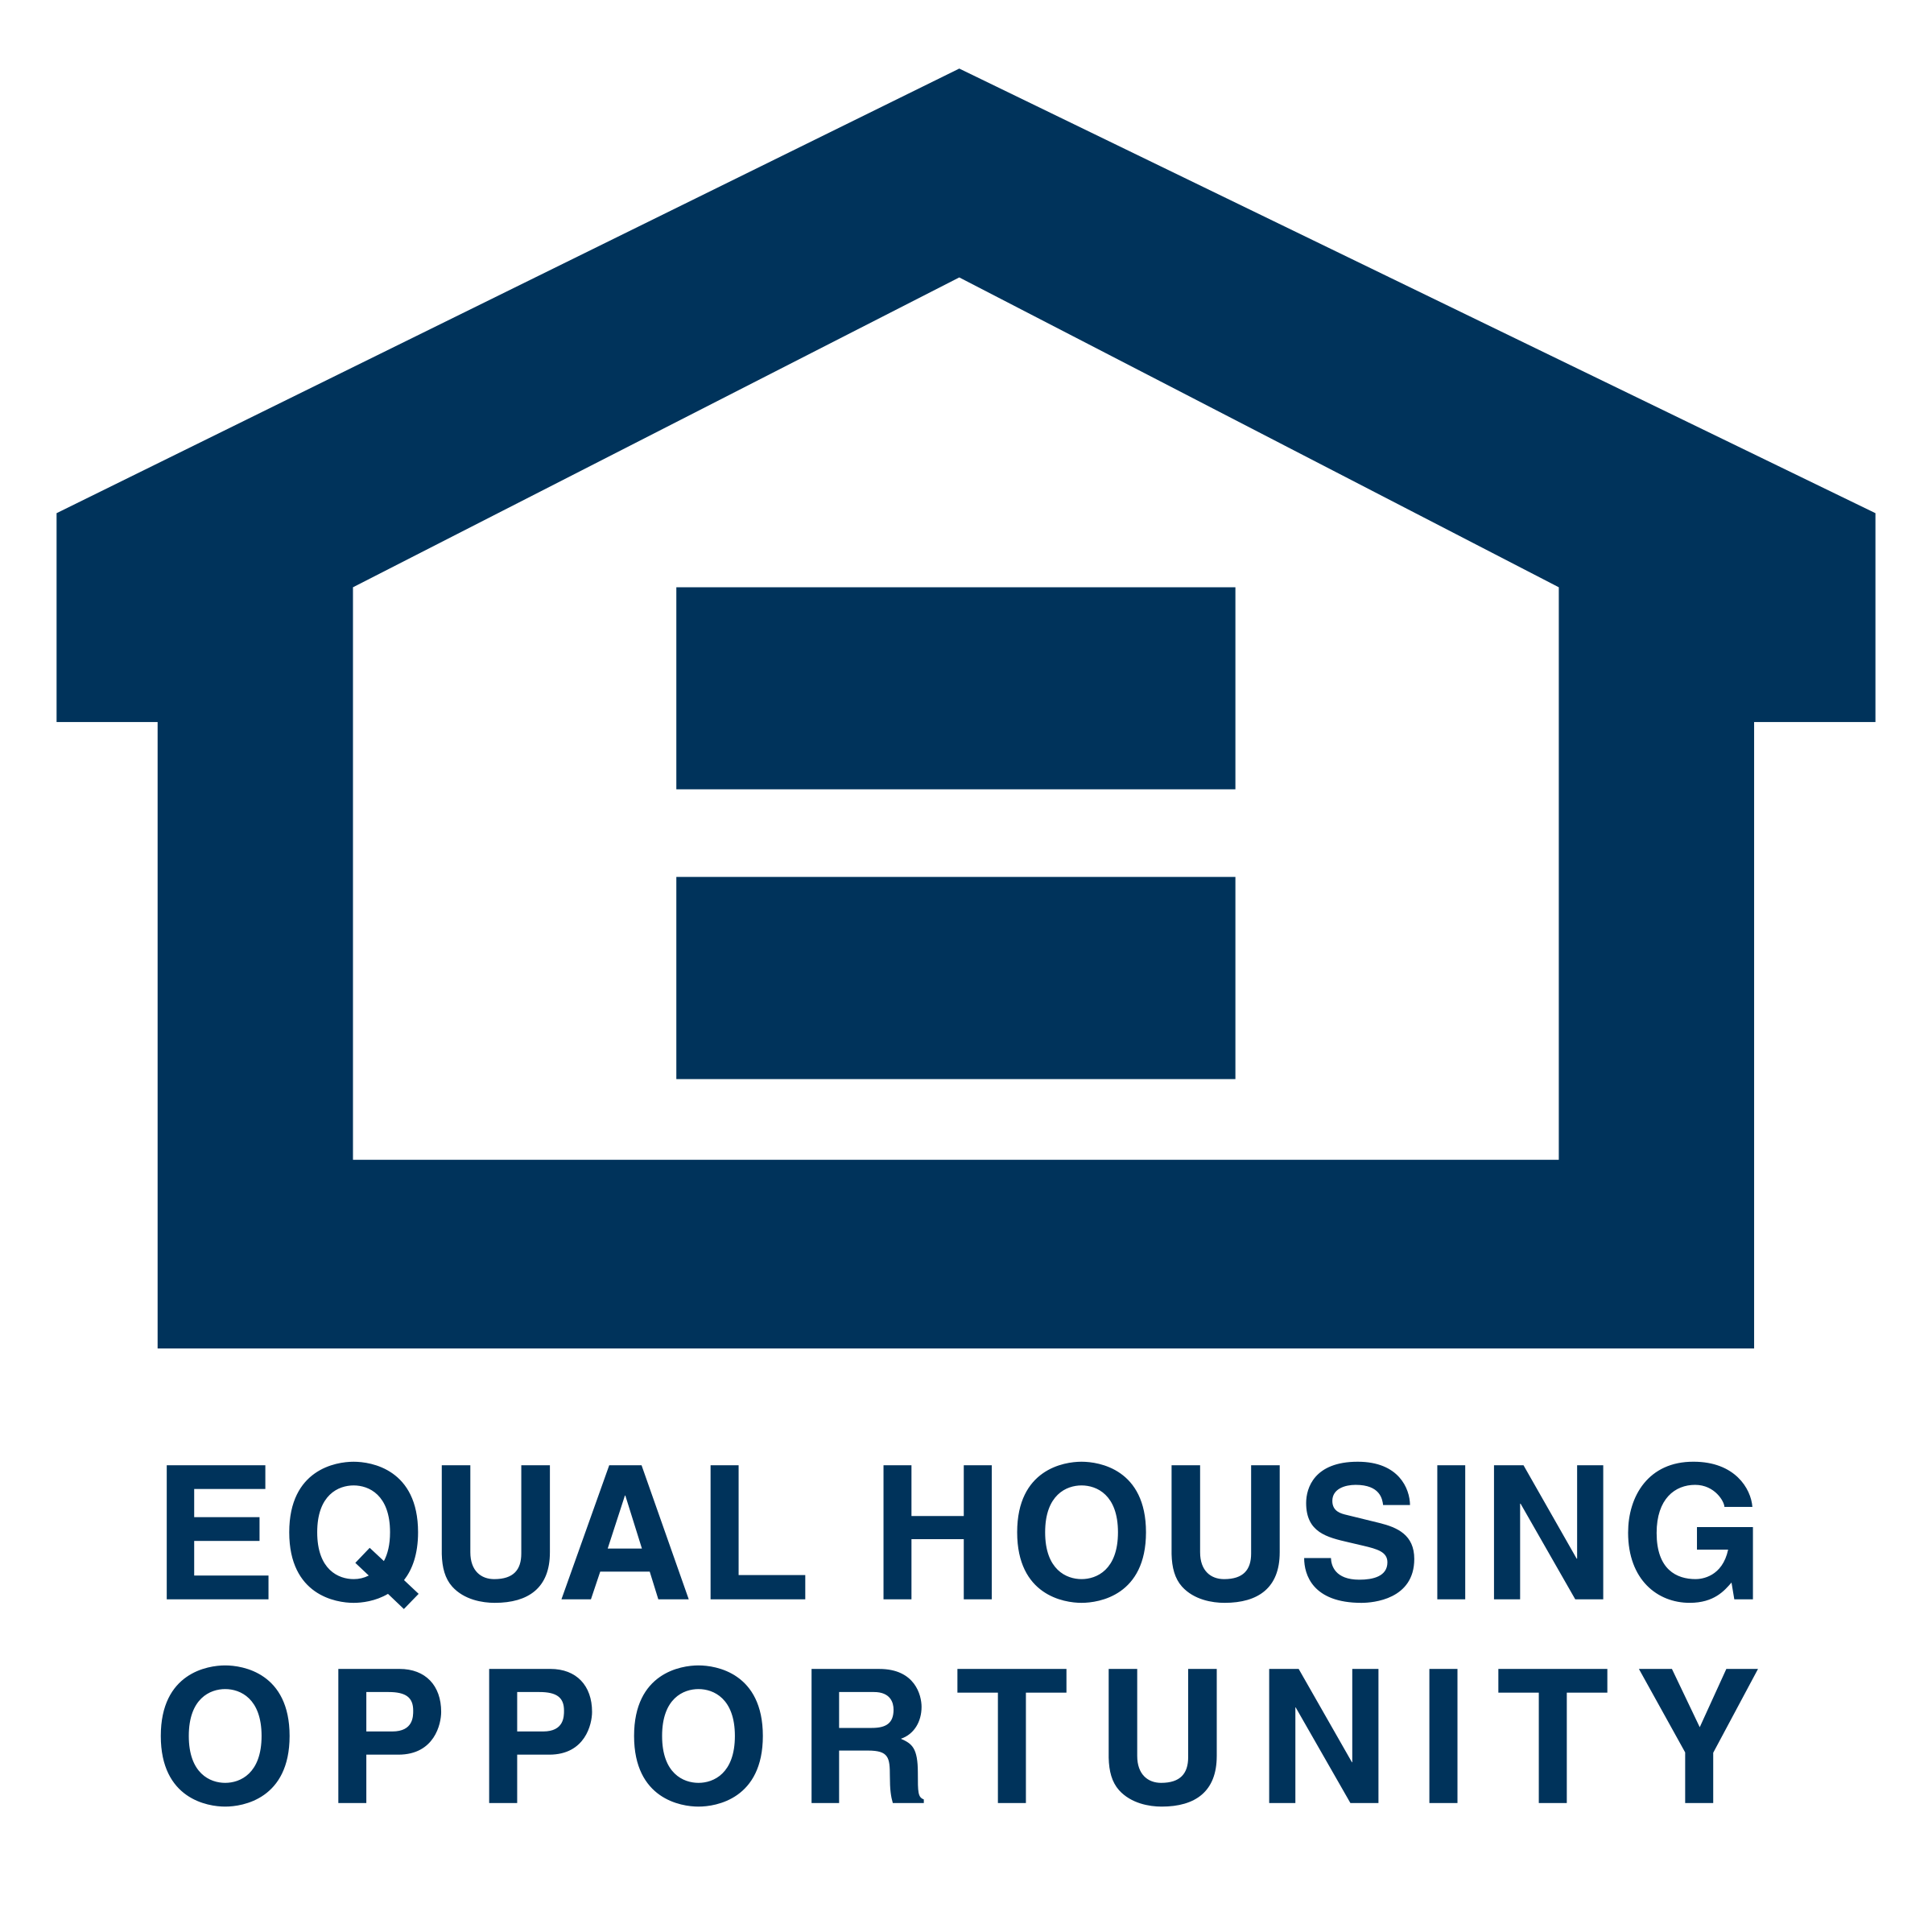 equal-housing-opportunity-logo-png-Blue